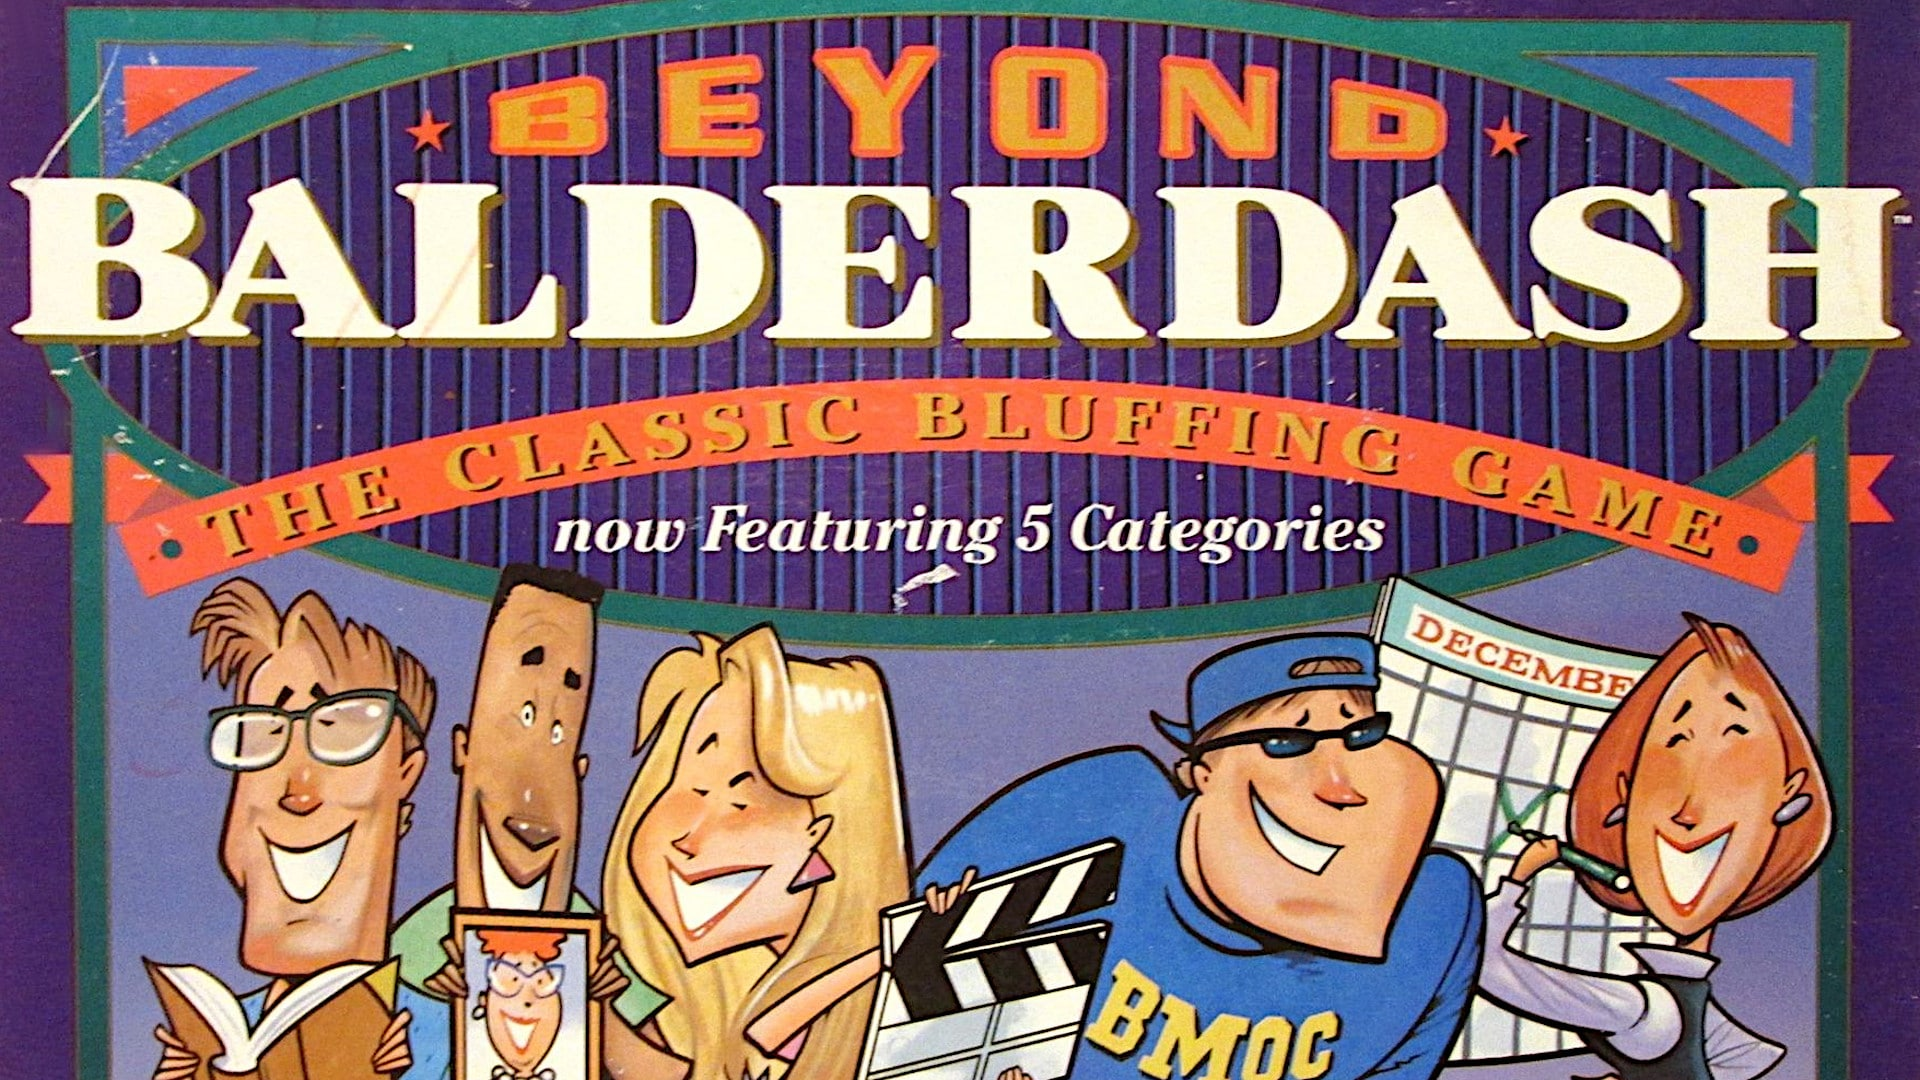 Beyond Balderdash Game Rules and How to Play Guide